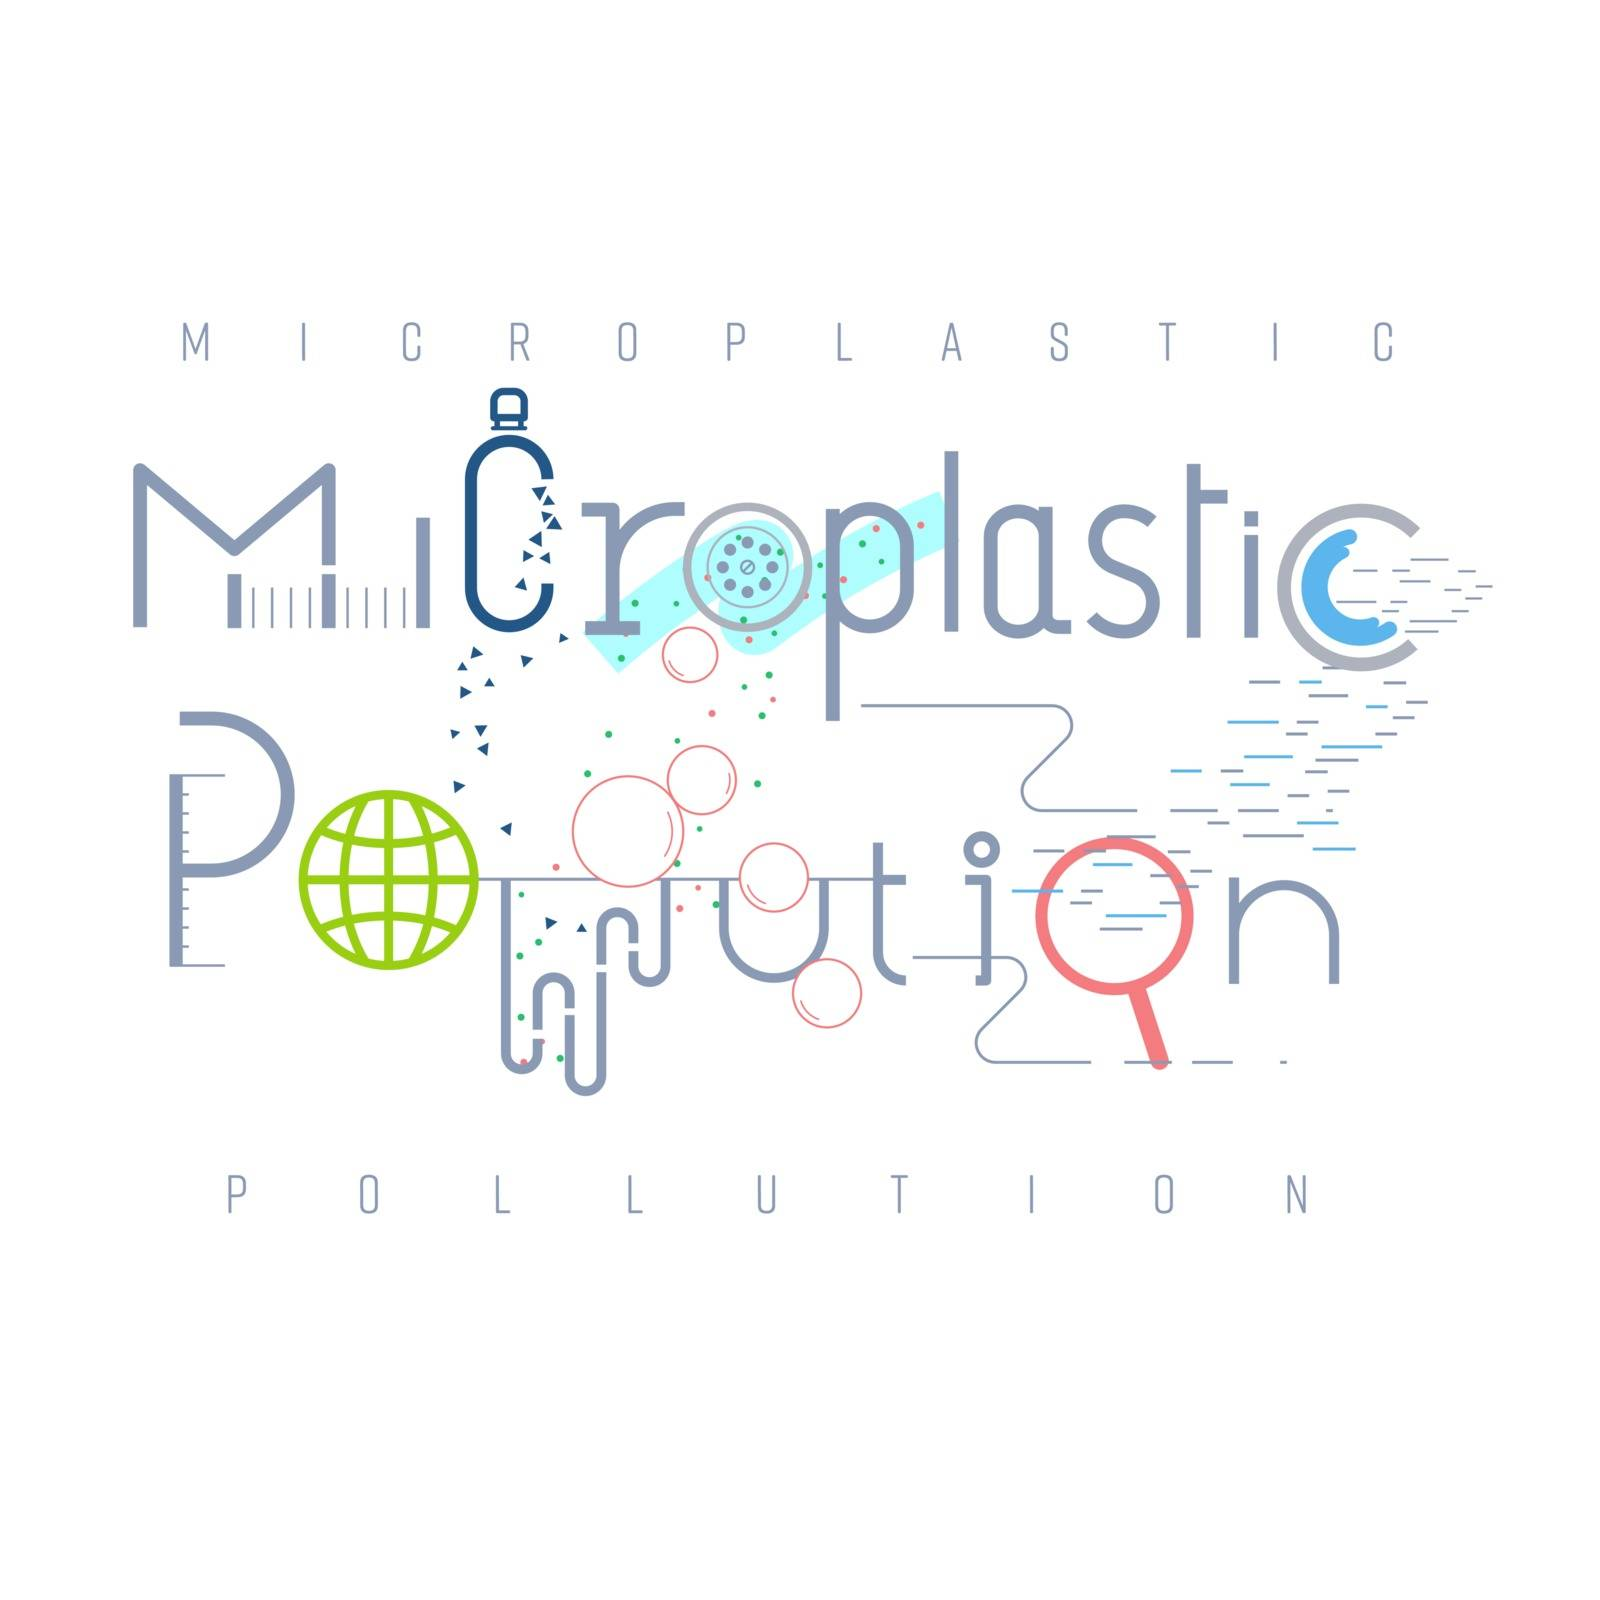 Microplastic pollution typographic design. Pictorial symbol. Types of plastic fragment less than 5 mm. causing pollution presented in pictorial form. Vector illustration outline flat design style.